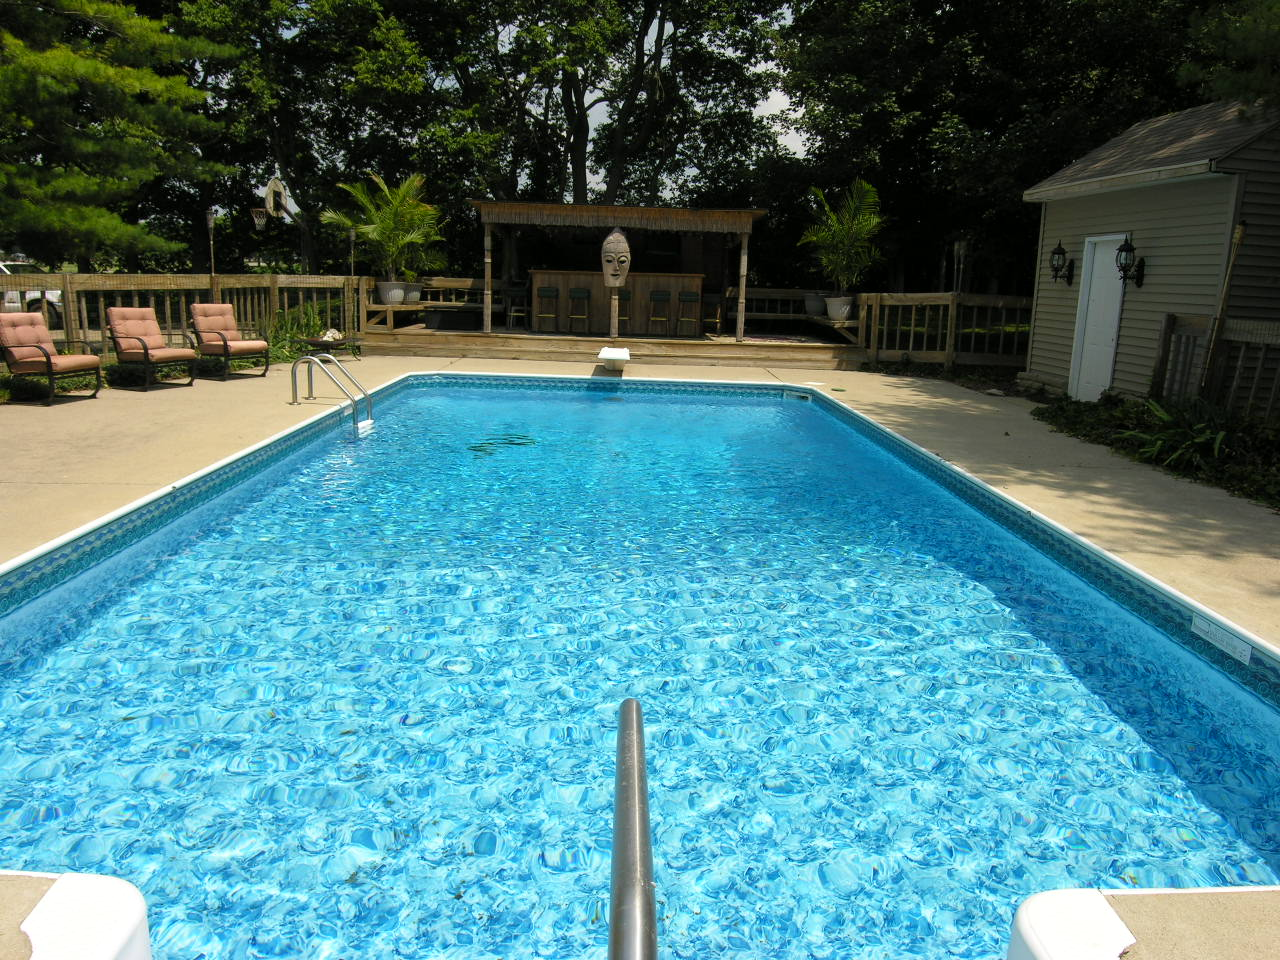 How To Maintain A Clean Pool – Tips and Tricks